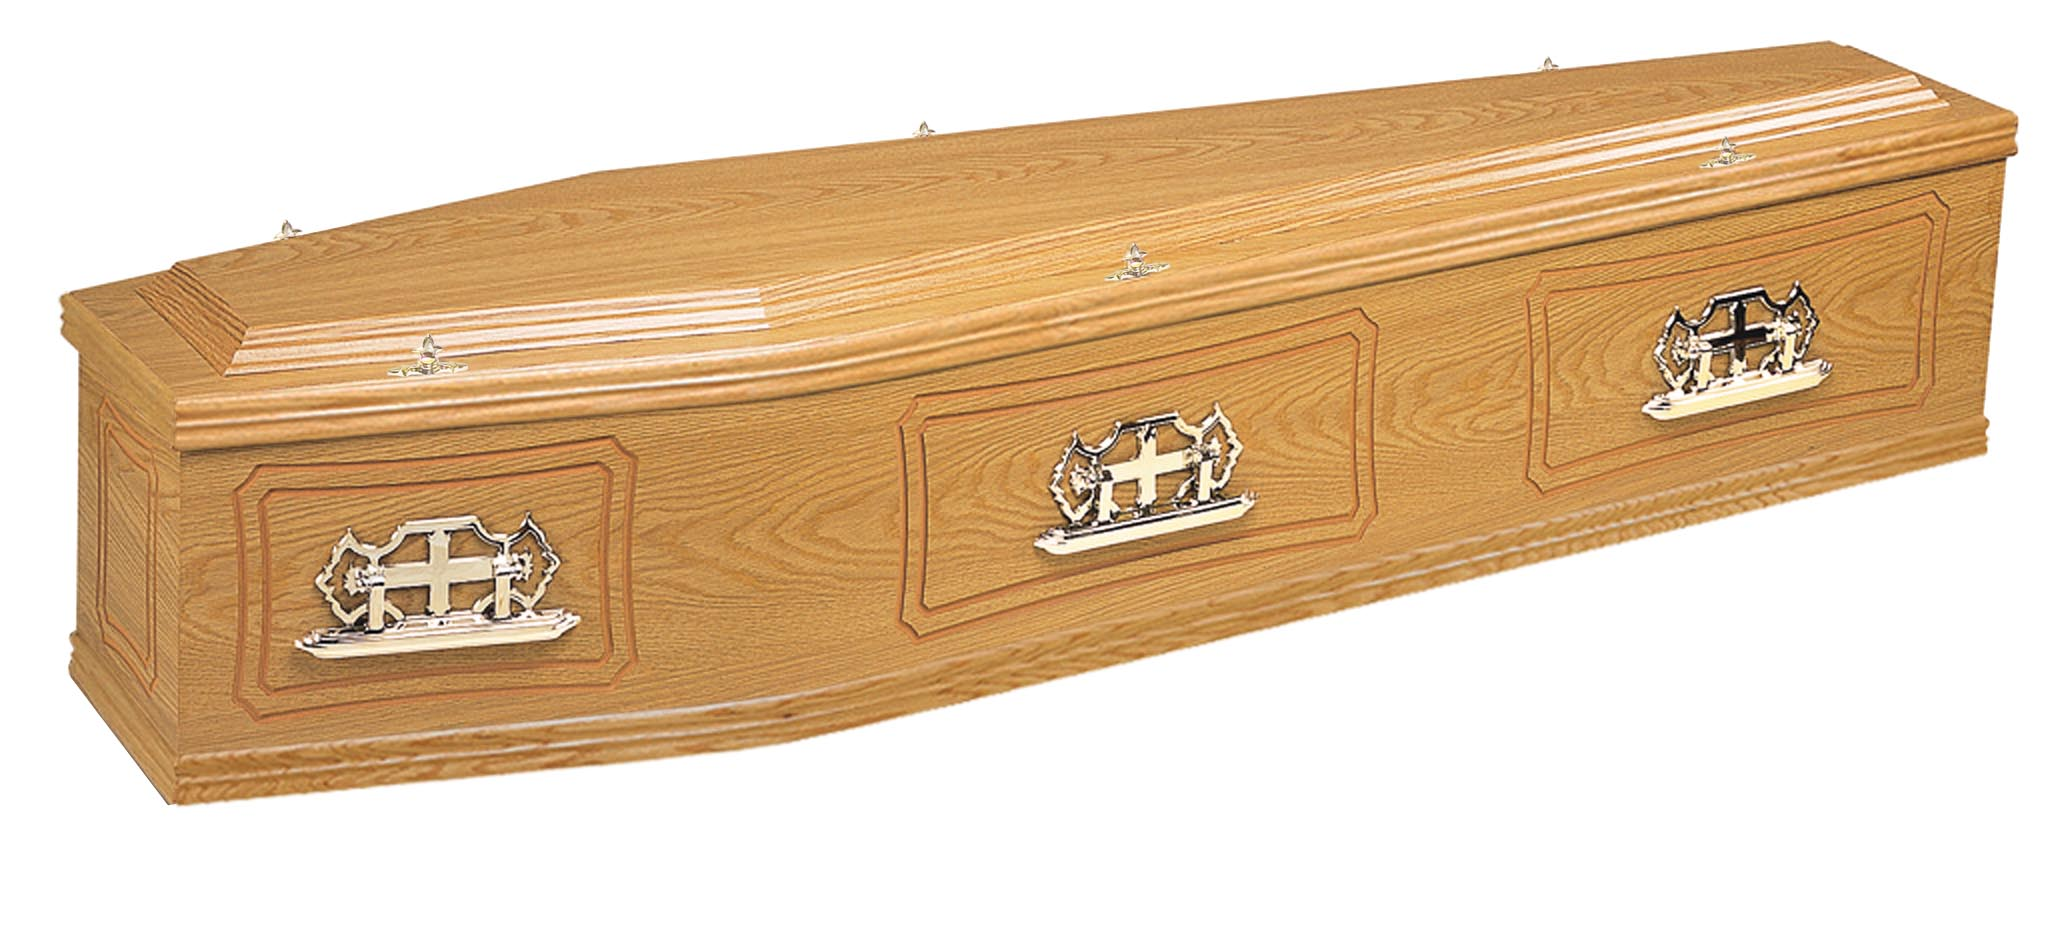 Traditional rookwood oak pencil panelled coffin